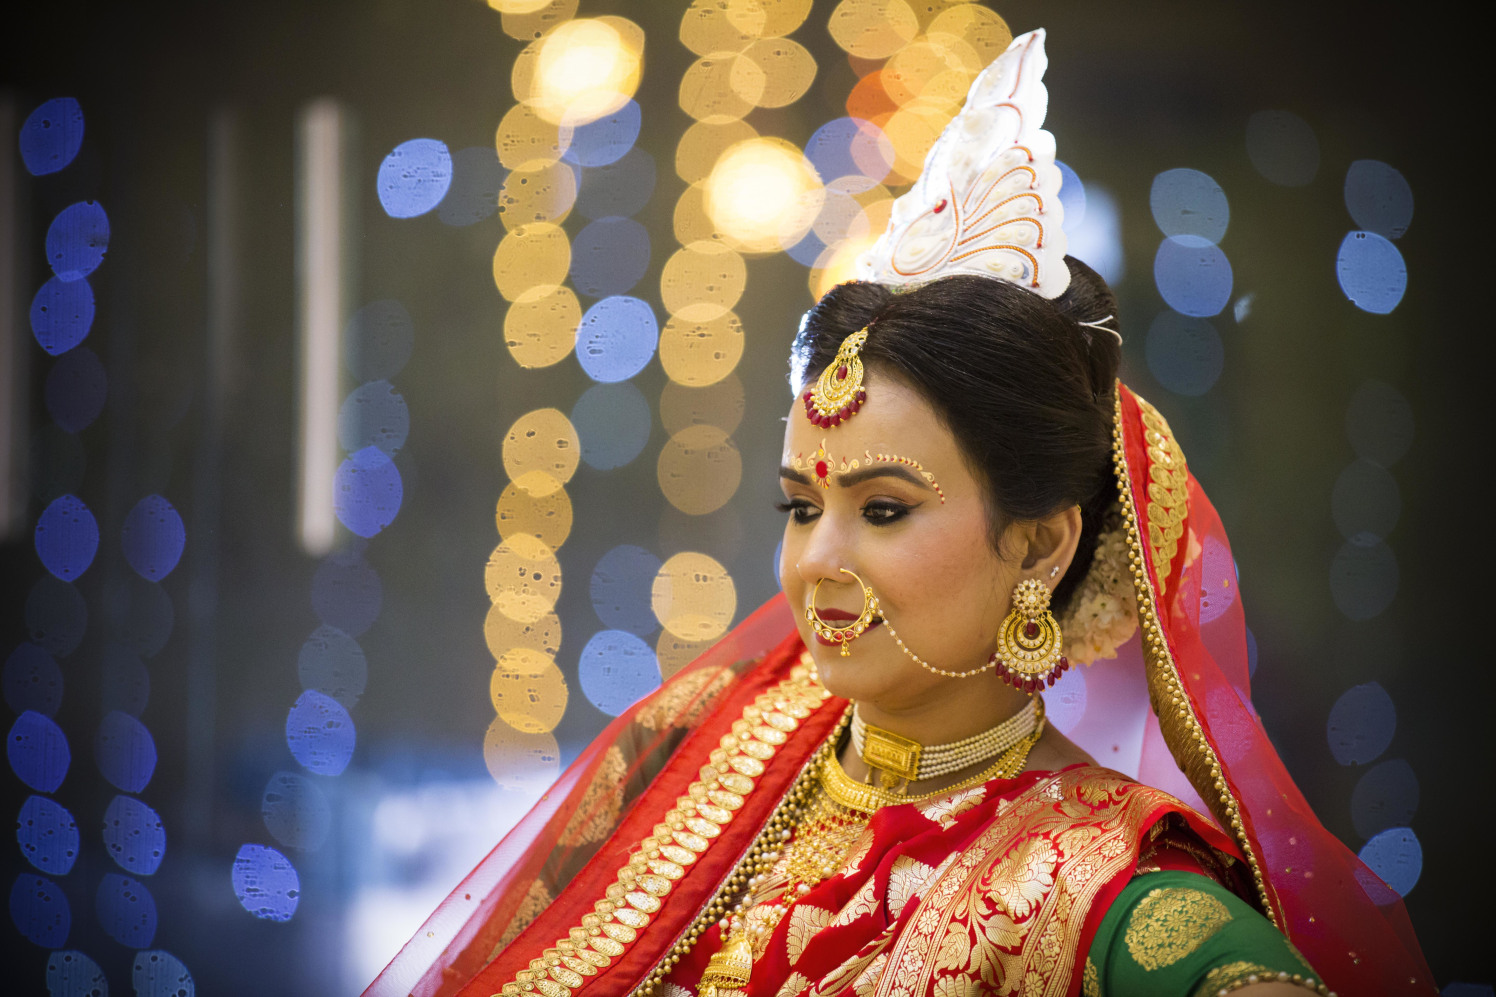 Indian Bridal Makeup By Slice Of Life Pictures